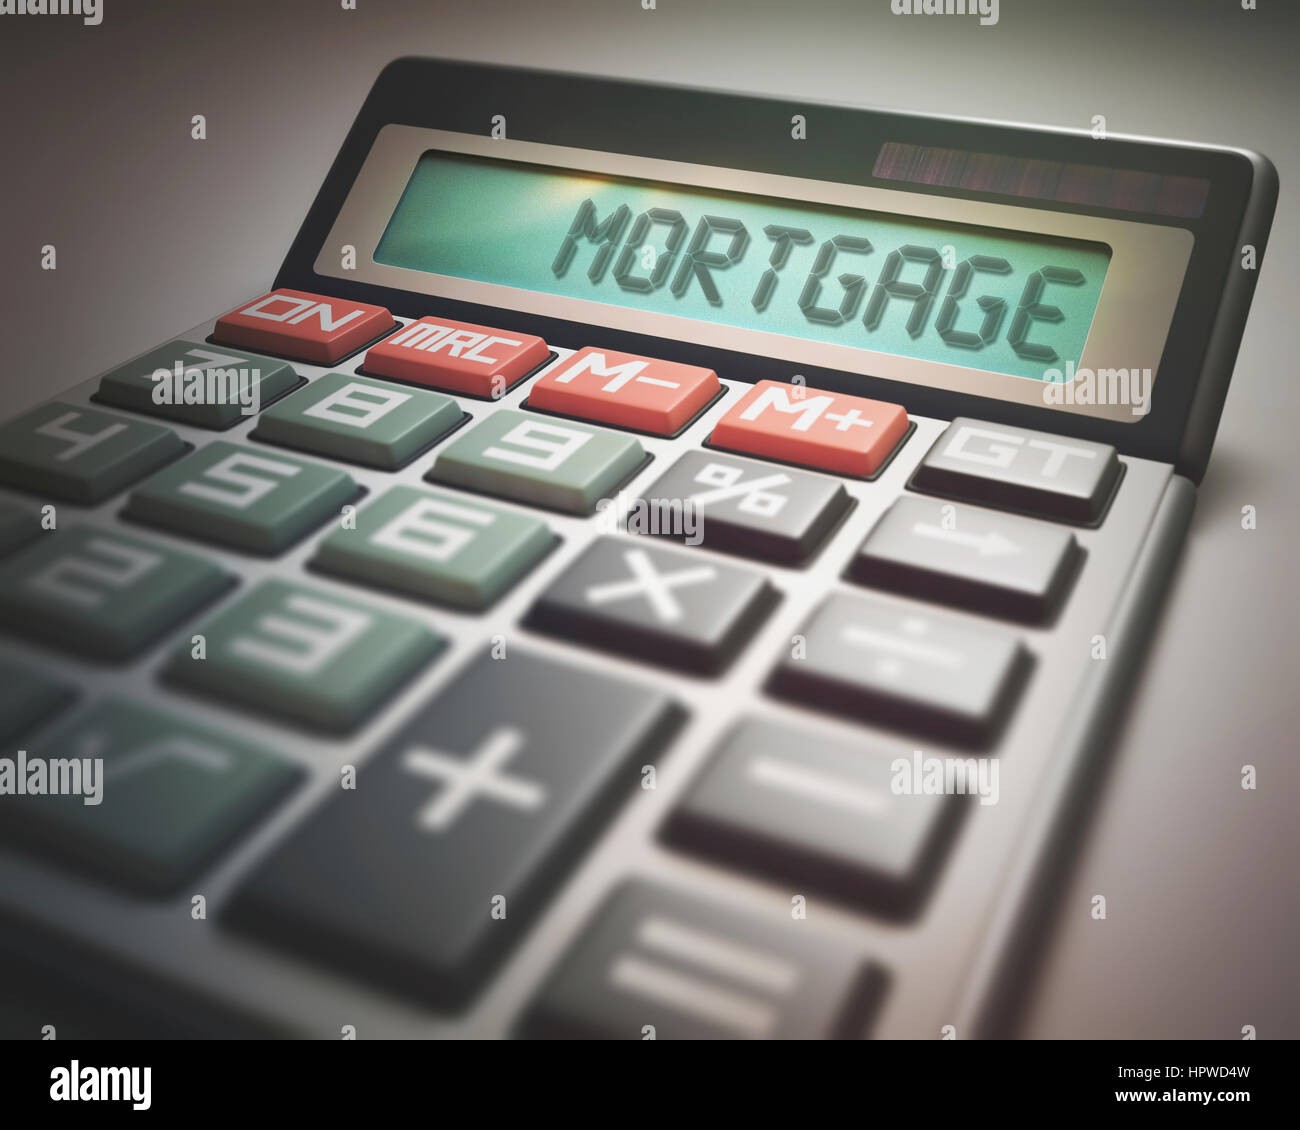 Calculator with the word mortgage, illustration. - Stock Image